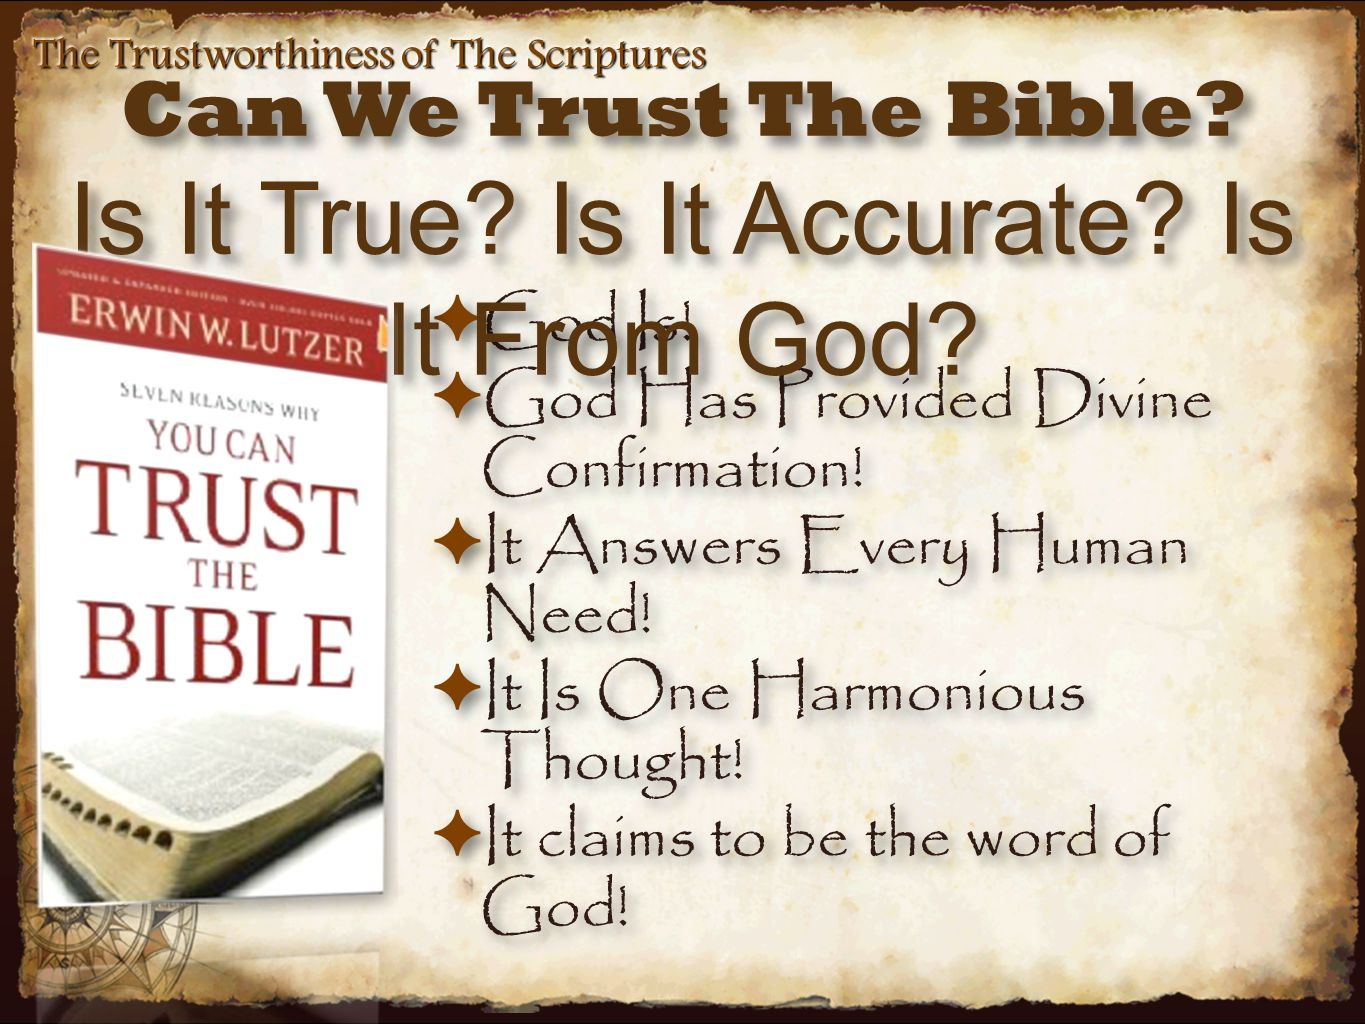 The Trustworthiness of The Scriptures Prophecies Regarding Jesus Fulfilled Prophecy Hebrew Scripture New Testament Fulfillment People would hear not and see not Isaiah 6:9-10Matthew 13:14-15 People trust in traditions of men Isaiah 29:13Matthew 15:9 People give God lip serviceIsaiah 29:13Matthew 15:8 God delights in HimIsaiah 42:1Matthew 3:17, 17:5 Wounded for our sinsIsaiah 53:5John 6:51 He bore the sins of manyIsaiah 53:10-12Mark 10:45 Messiah not killed for Himself Daniel 9:26Matthew 20:28